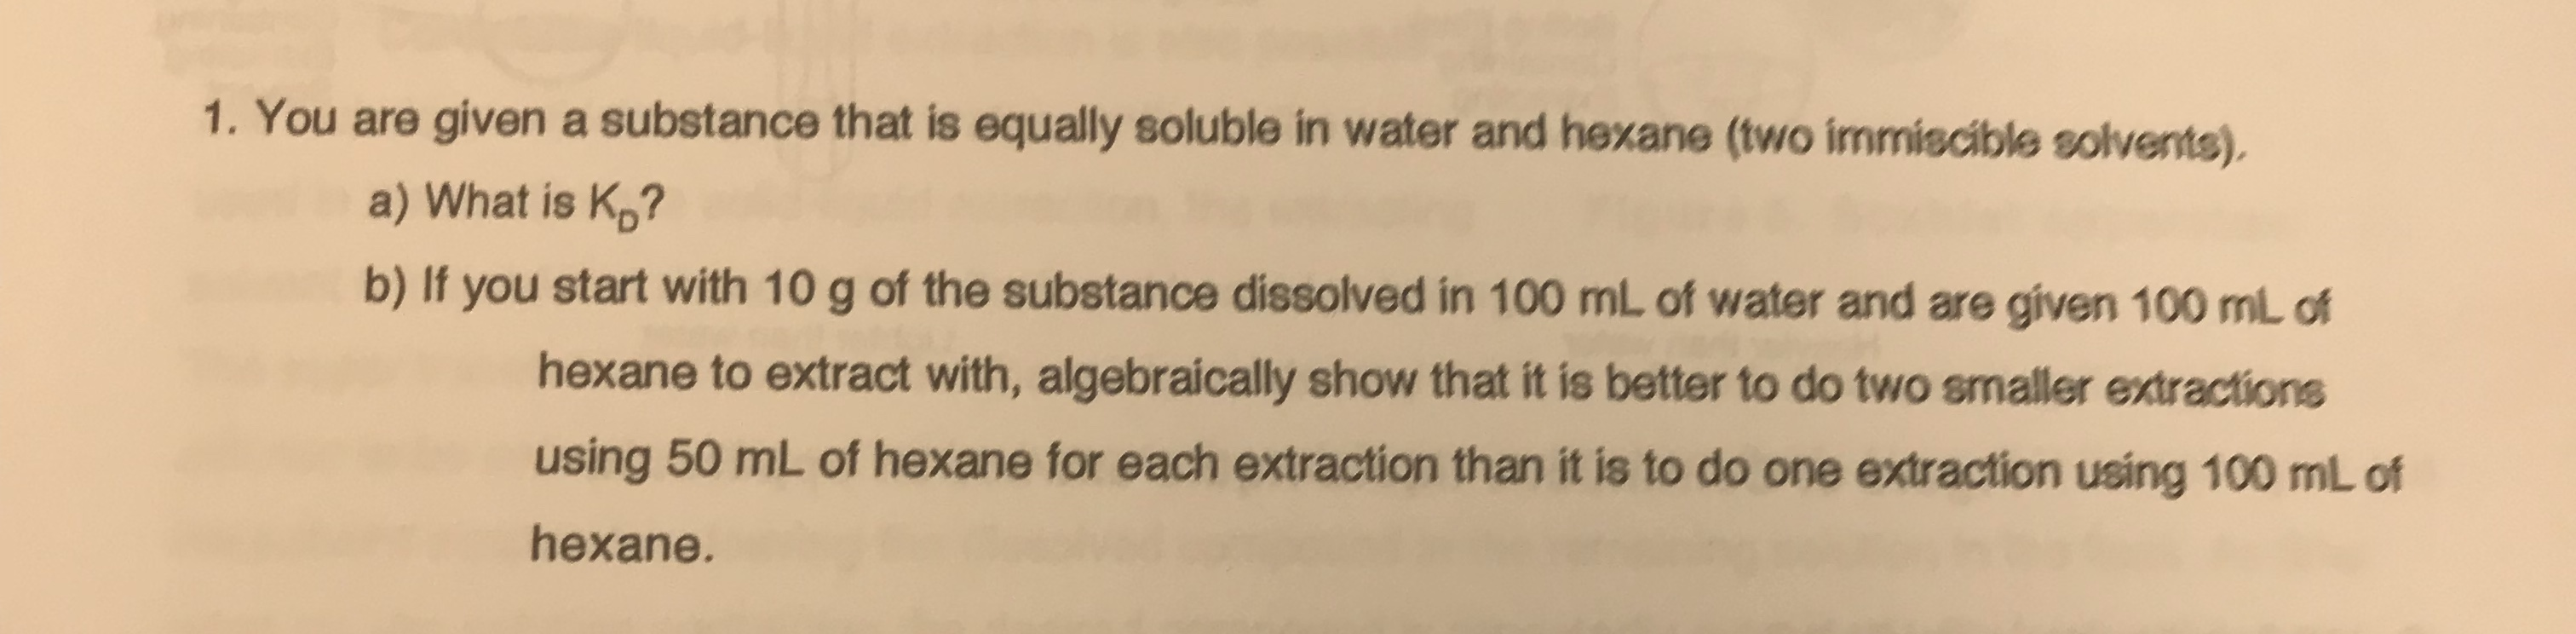 1. You are given a substance that is equally soluble in water and hexane (two immiscible solvents). a) What is Kp? b) If you start with 10 g of the substance dissolved in 100 mL of water and are given 100 mL of hexane to extract with, algebraically show that it is better to do two smaller extractions using 50 mL of hexane for each extraction than it is to do one extraction using 100 mL of hexane.